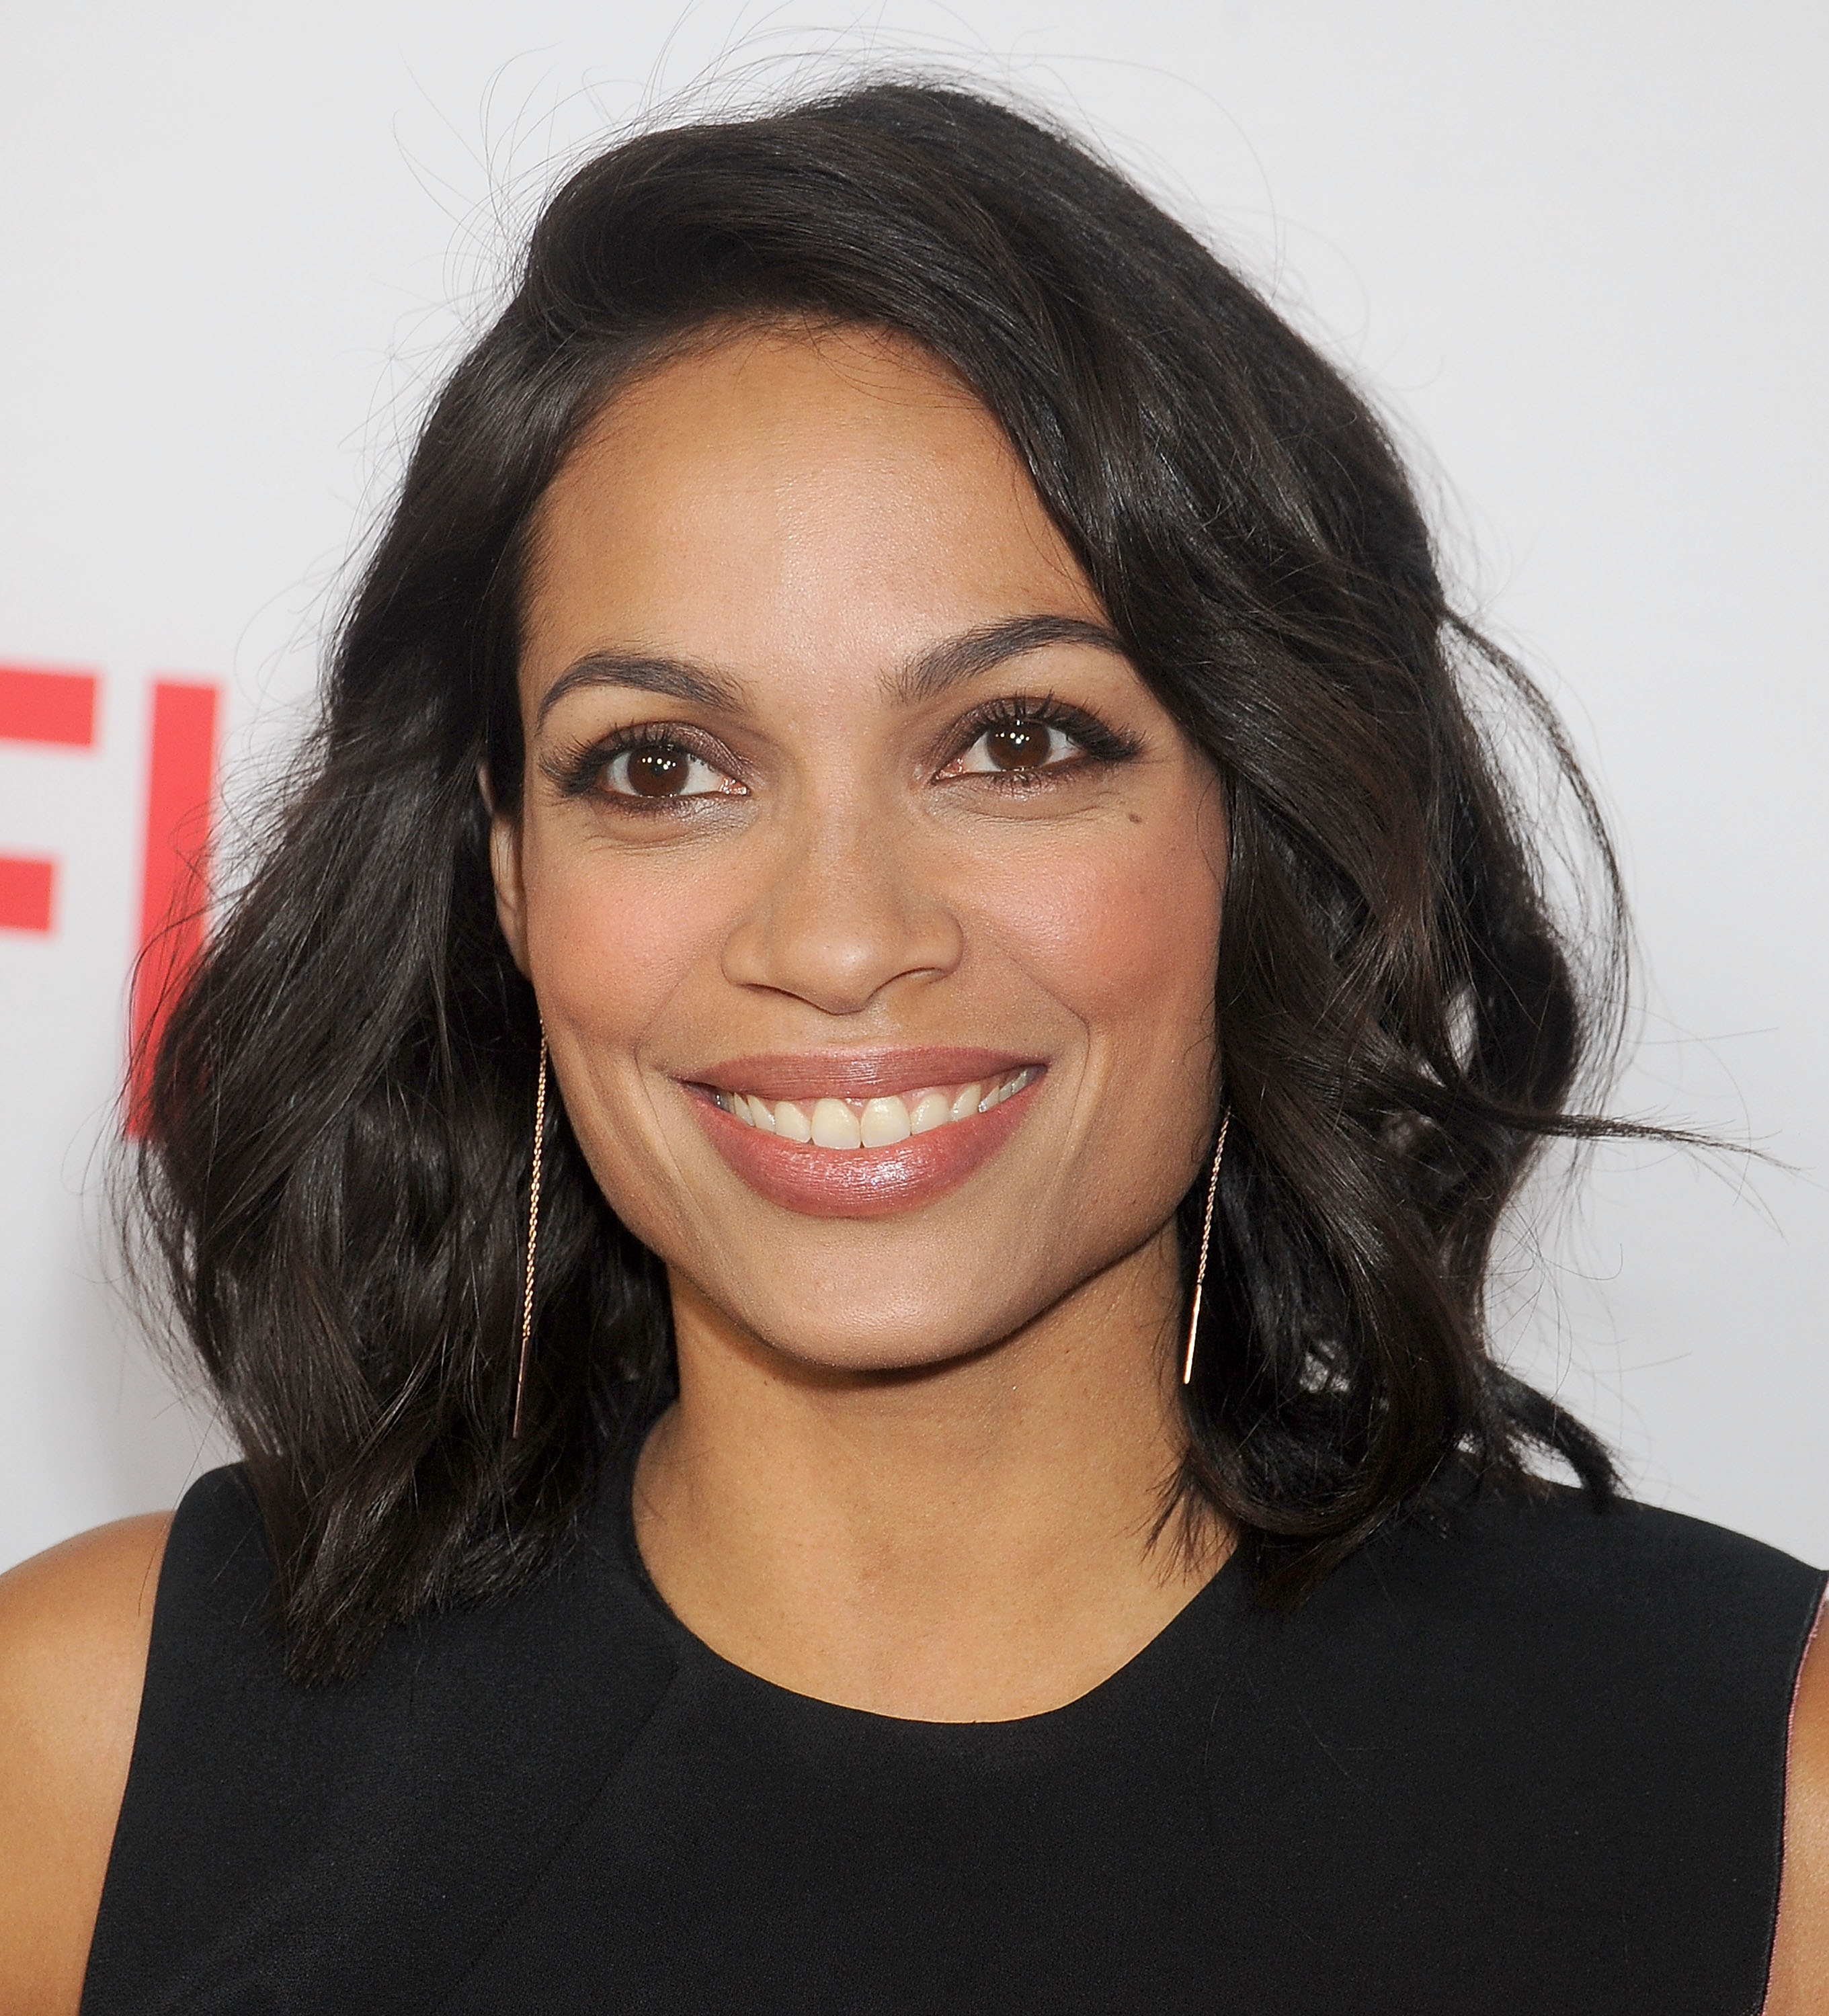 Actress Rosario Dawson arrives at the premiere Of Netflix's  Marvel's Daredevil  at Regal Cinemas L.A. Live on April 2, 2015 in Los Angeles, California.